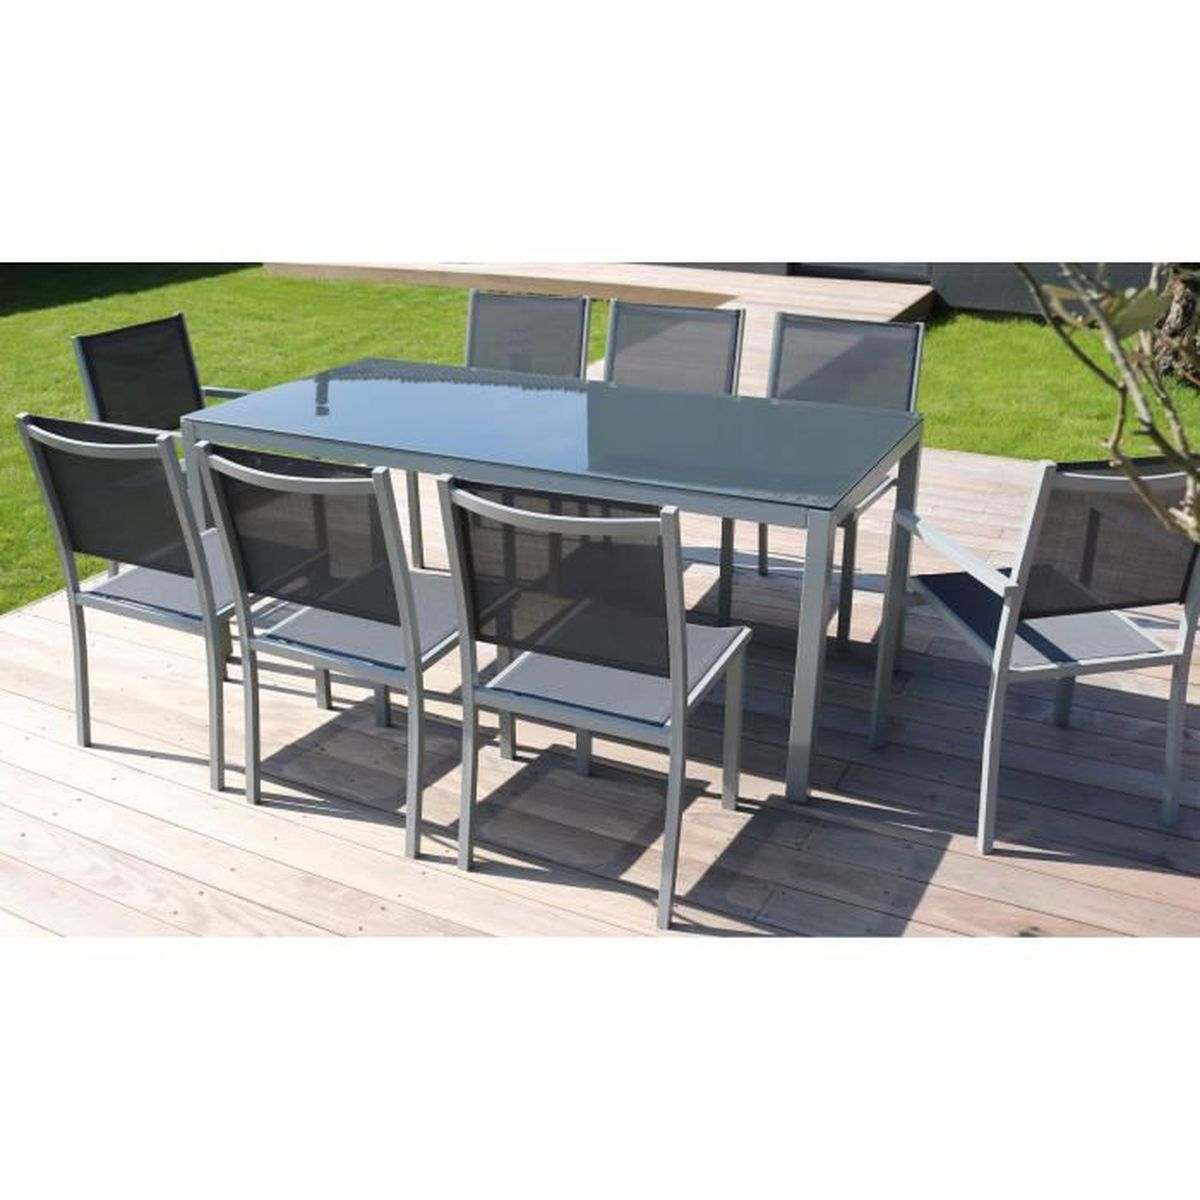 Table jardin alu verre achat vente pas cher for Achat table jardin